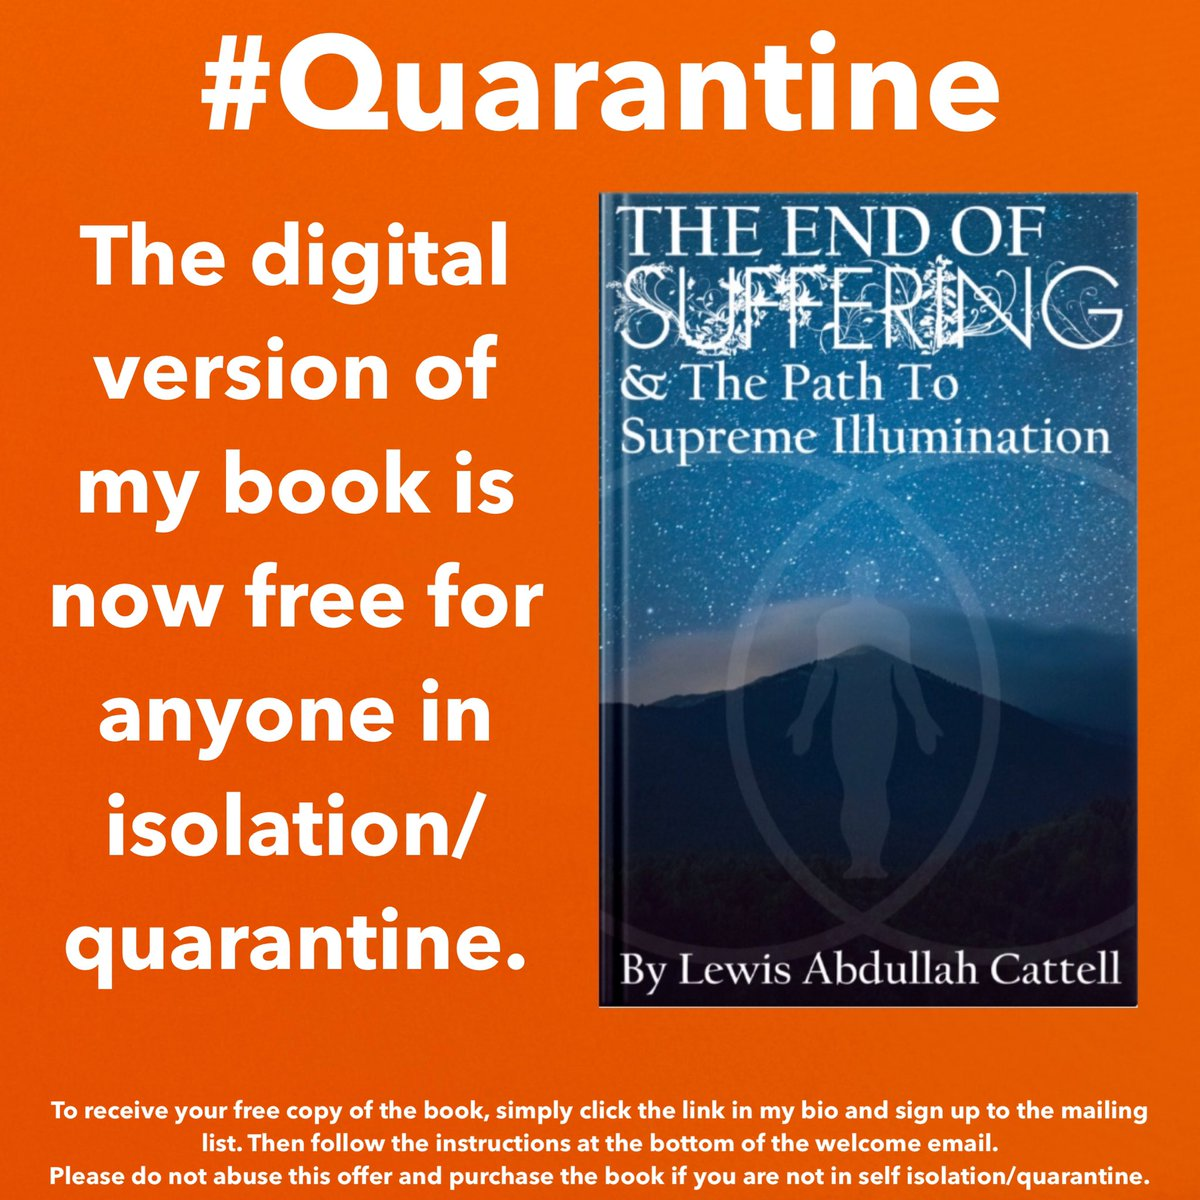 @katbarrellx You can read my book for free if tou are in quarantine (link in bio)